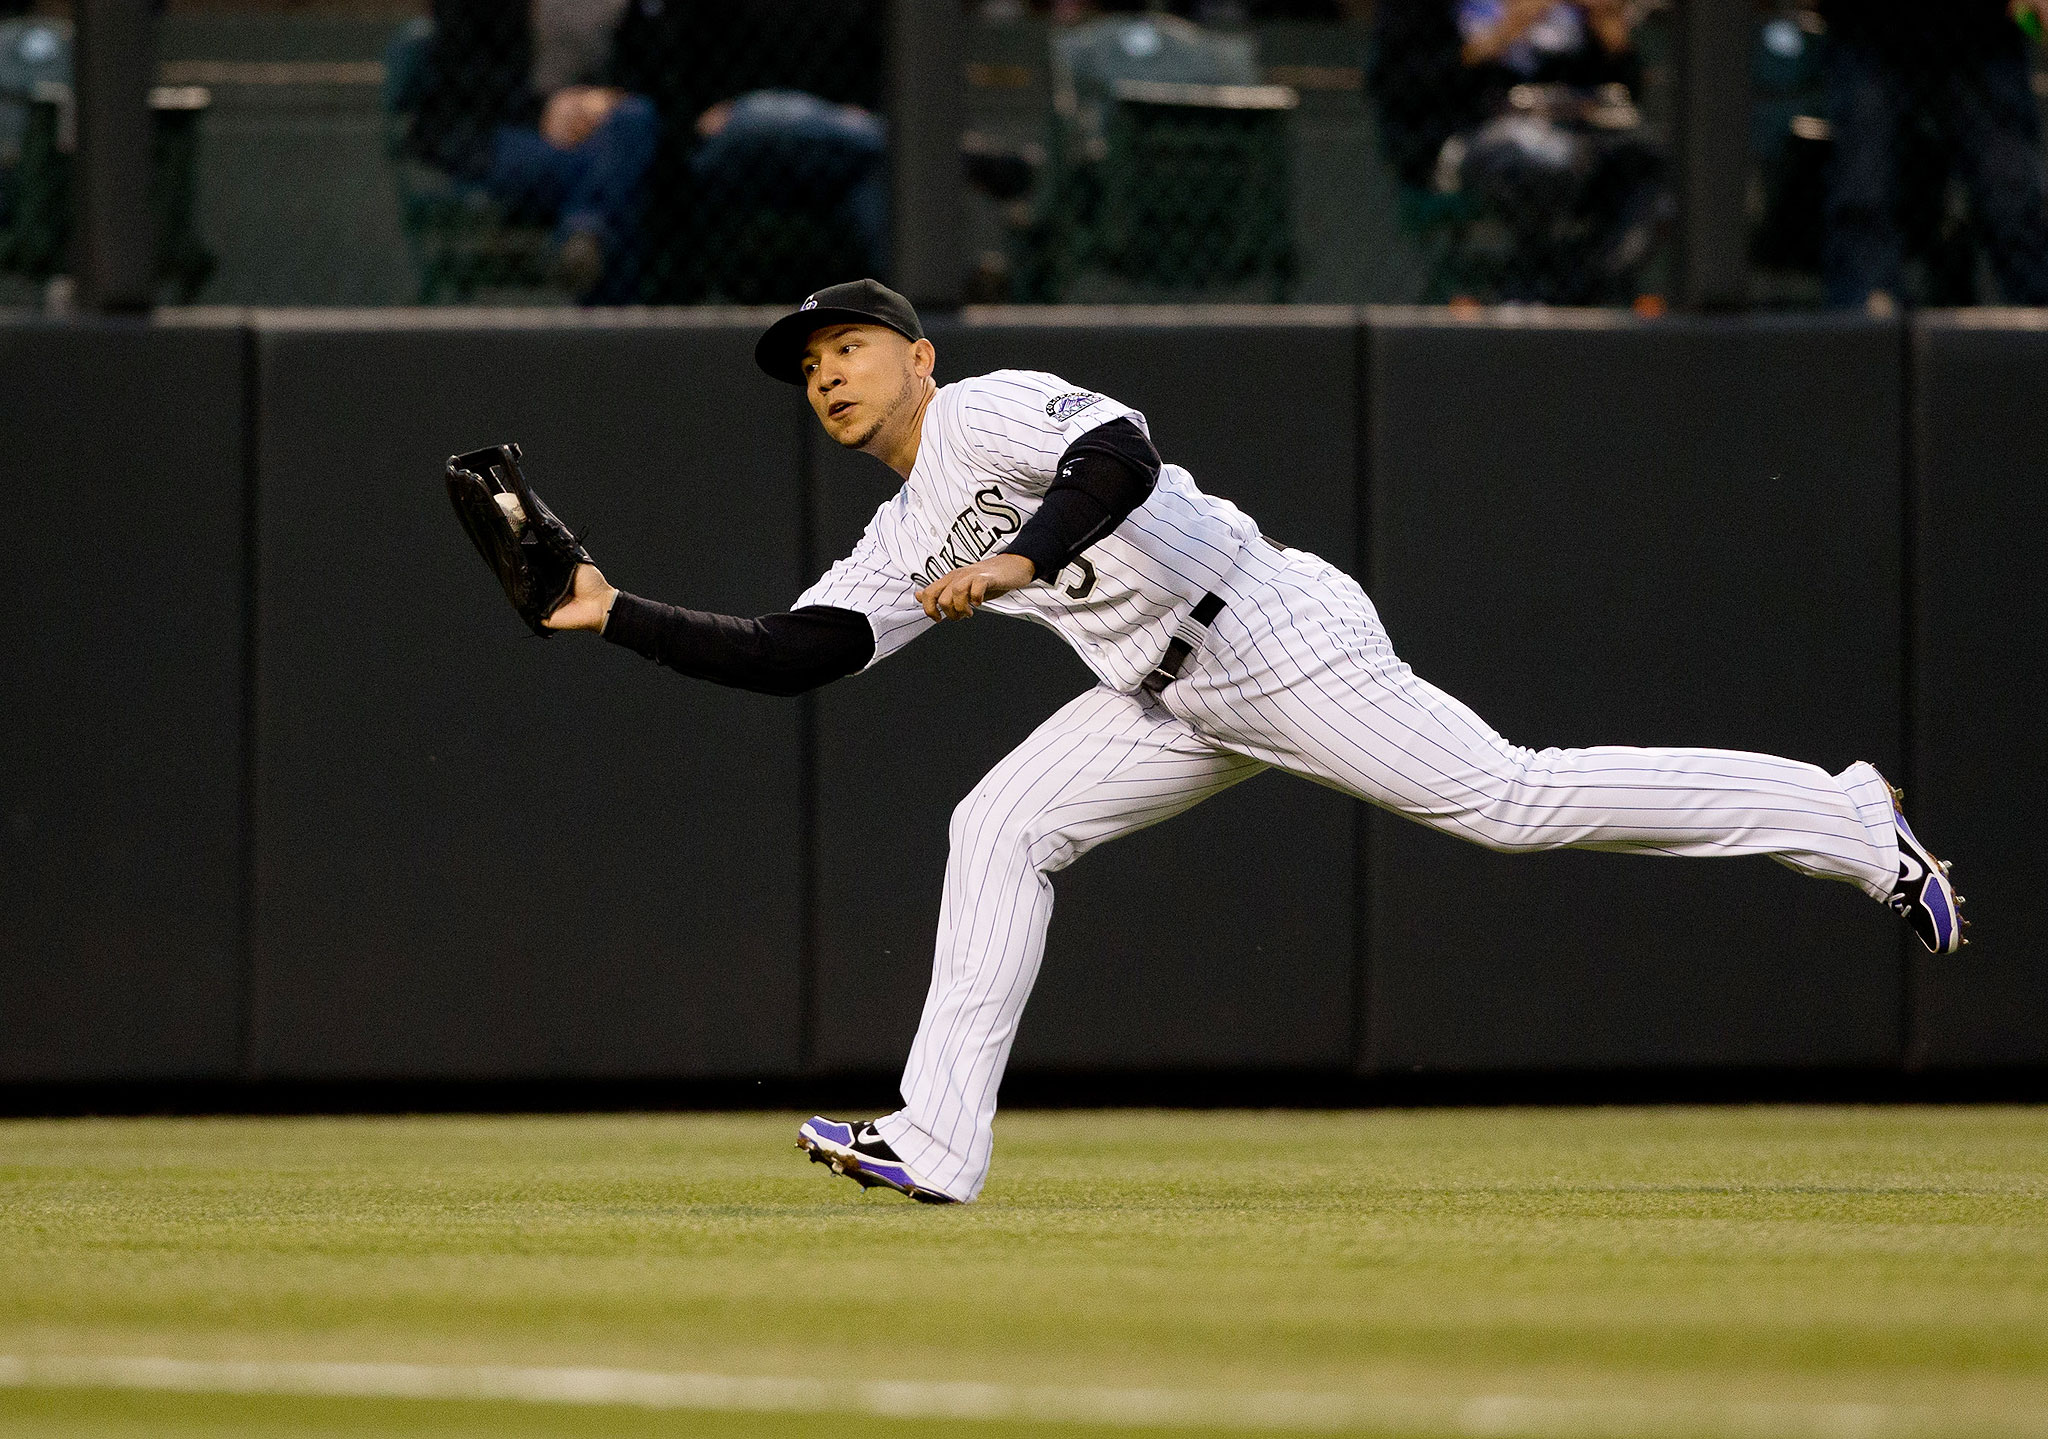 Left Field: Carlos Gonzalez